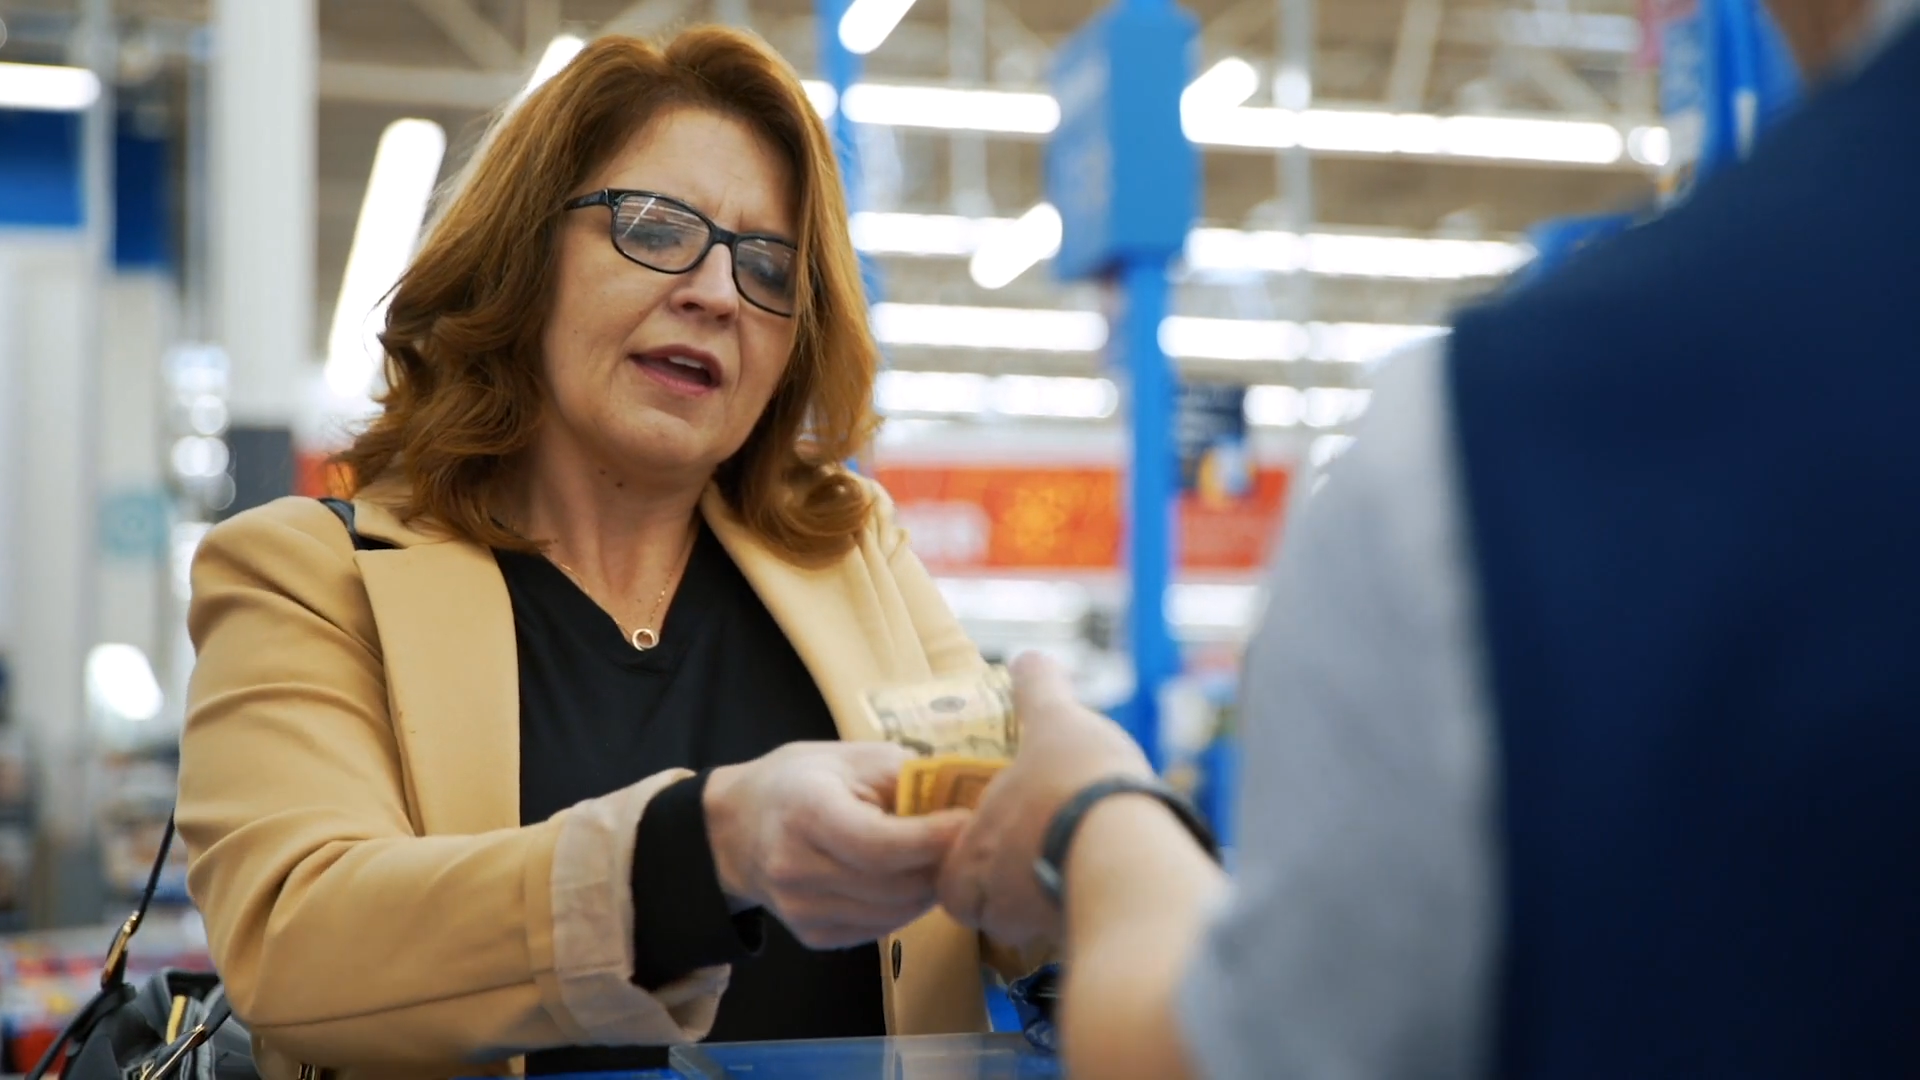 A customer buys a Walmart.com item with cash